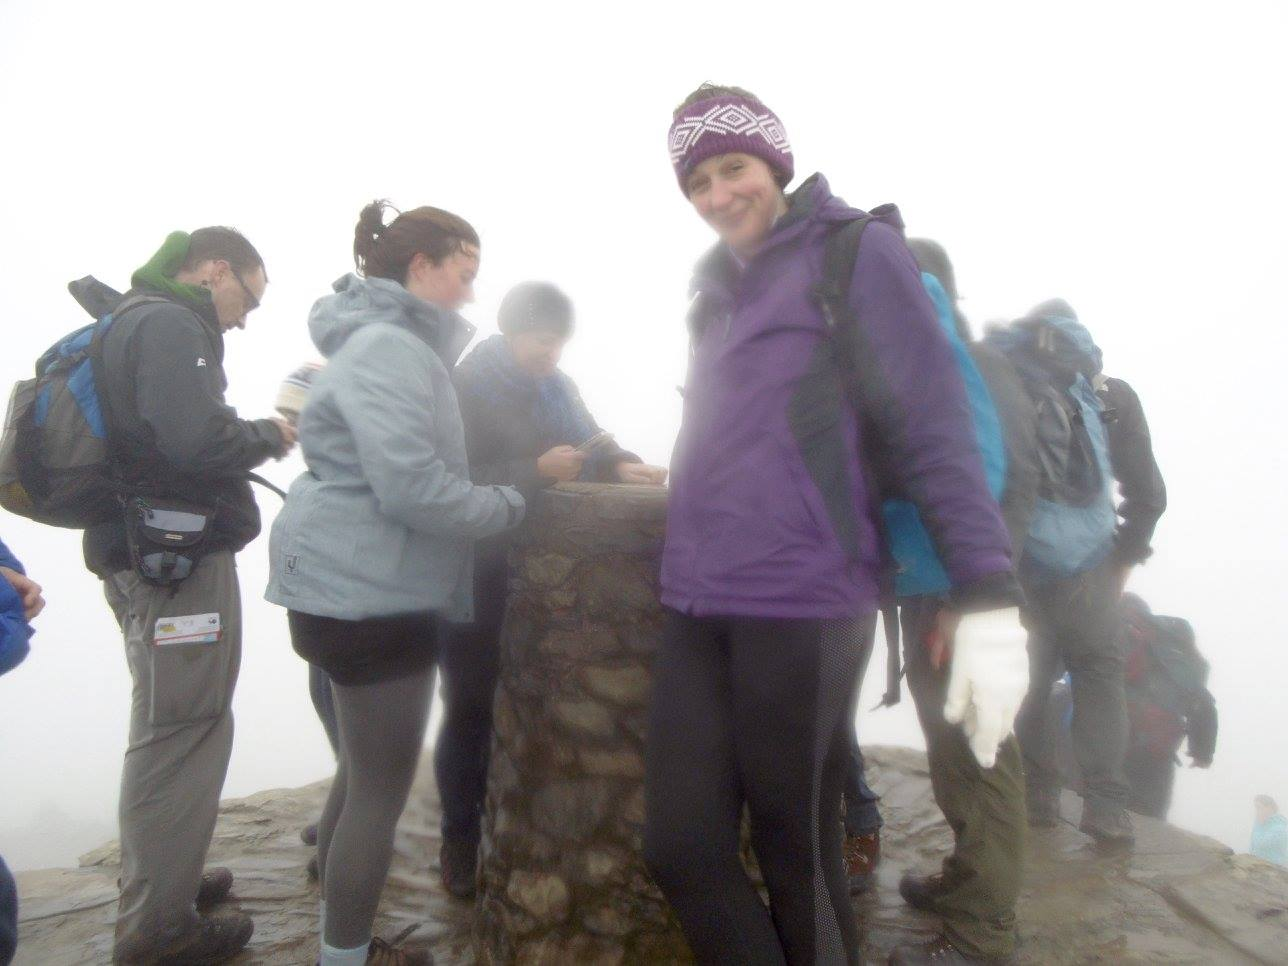 Exhausted, wet and with a lot of cloud around. I made it to the top of Snowdon, the highest mountain in Wales.